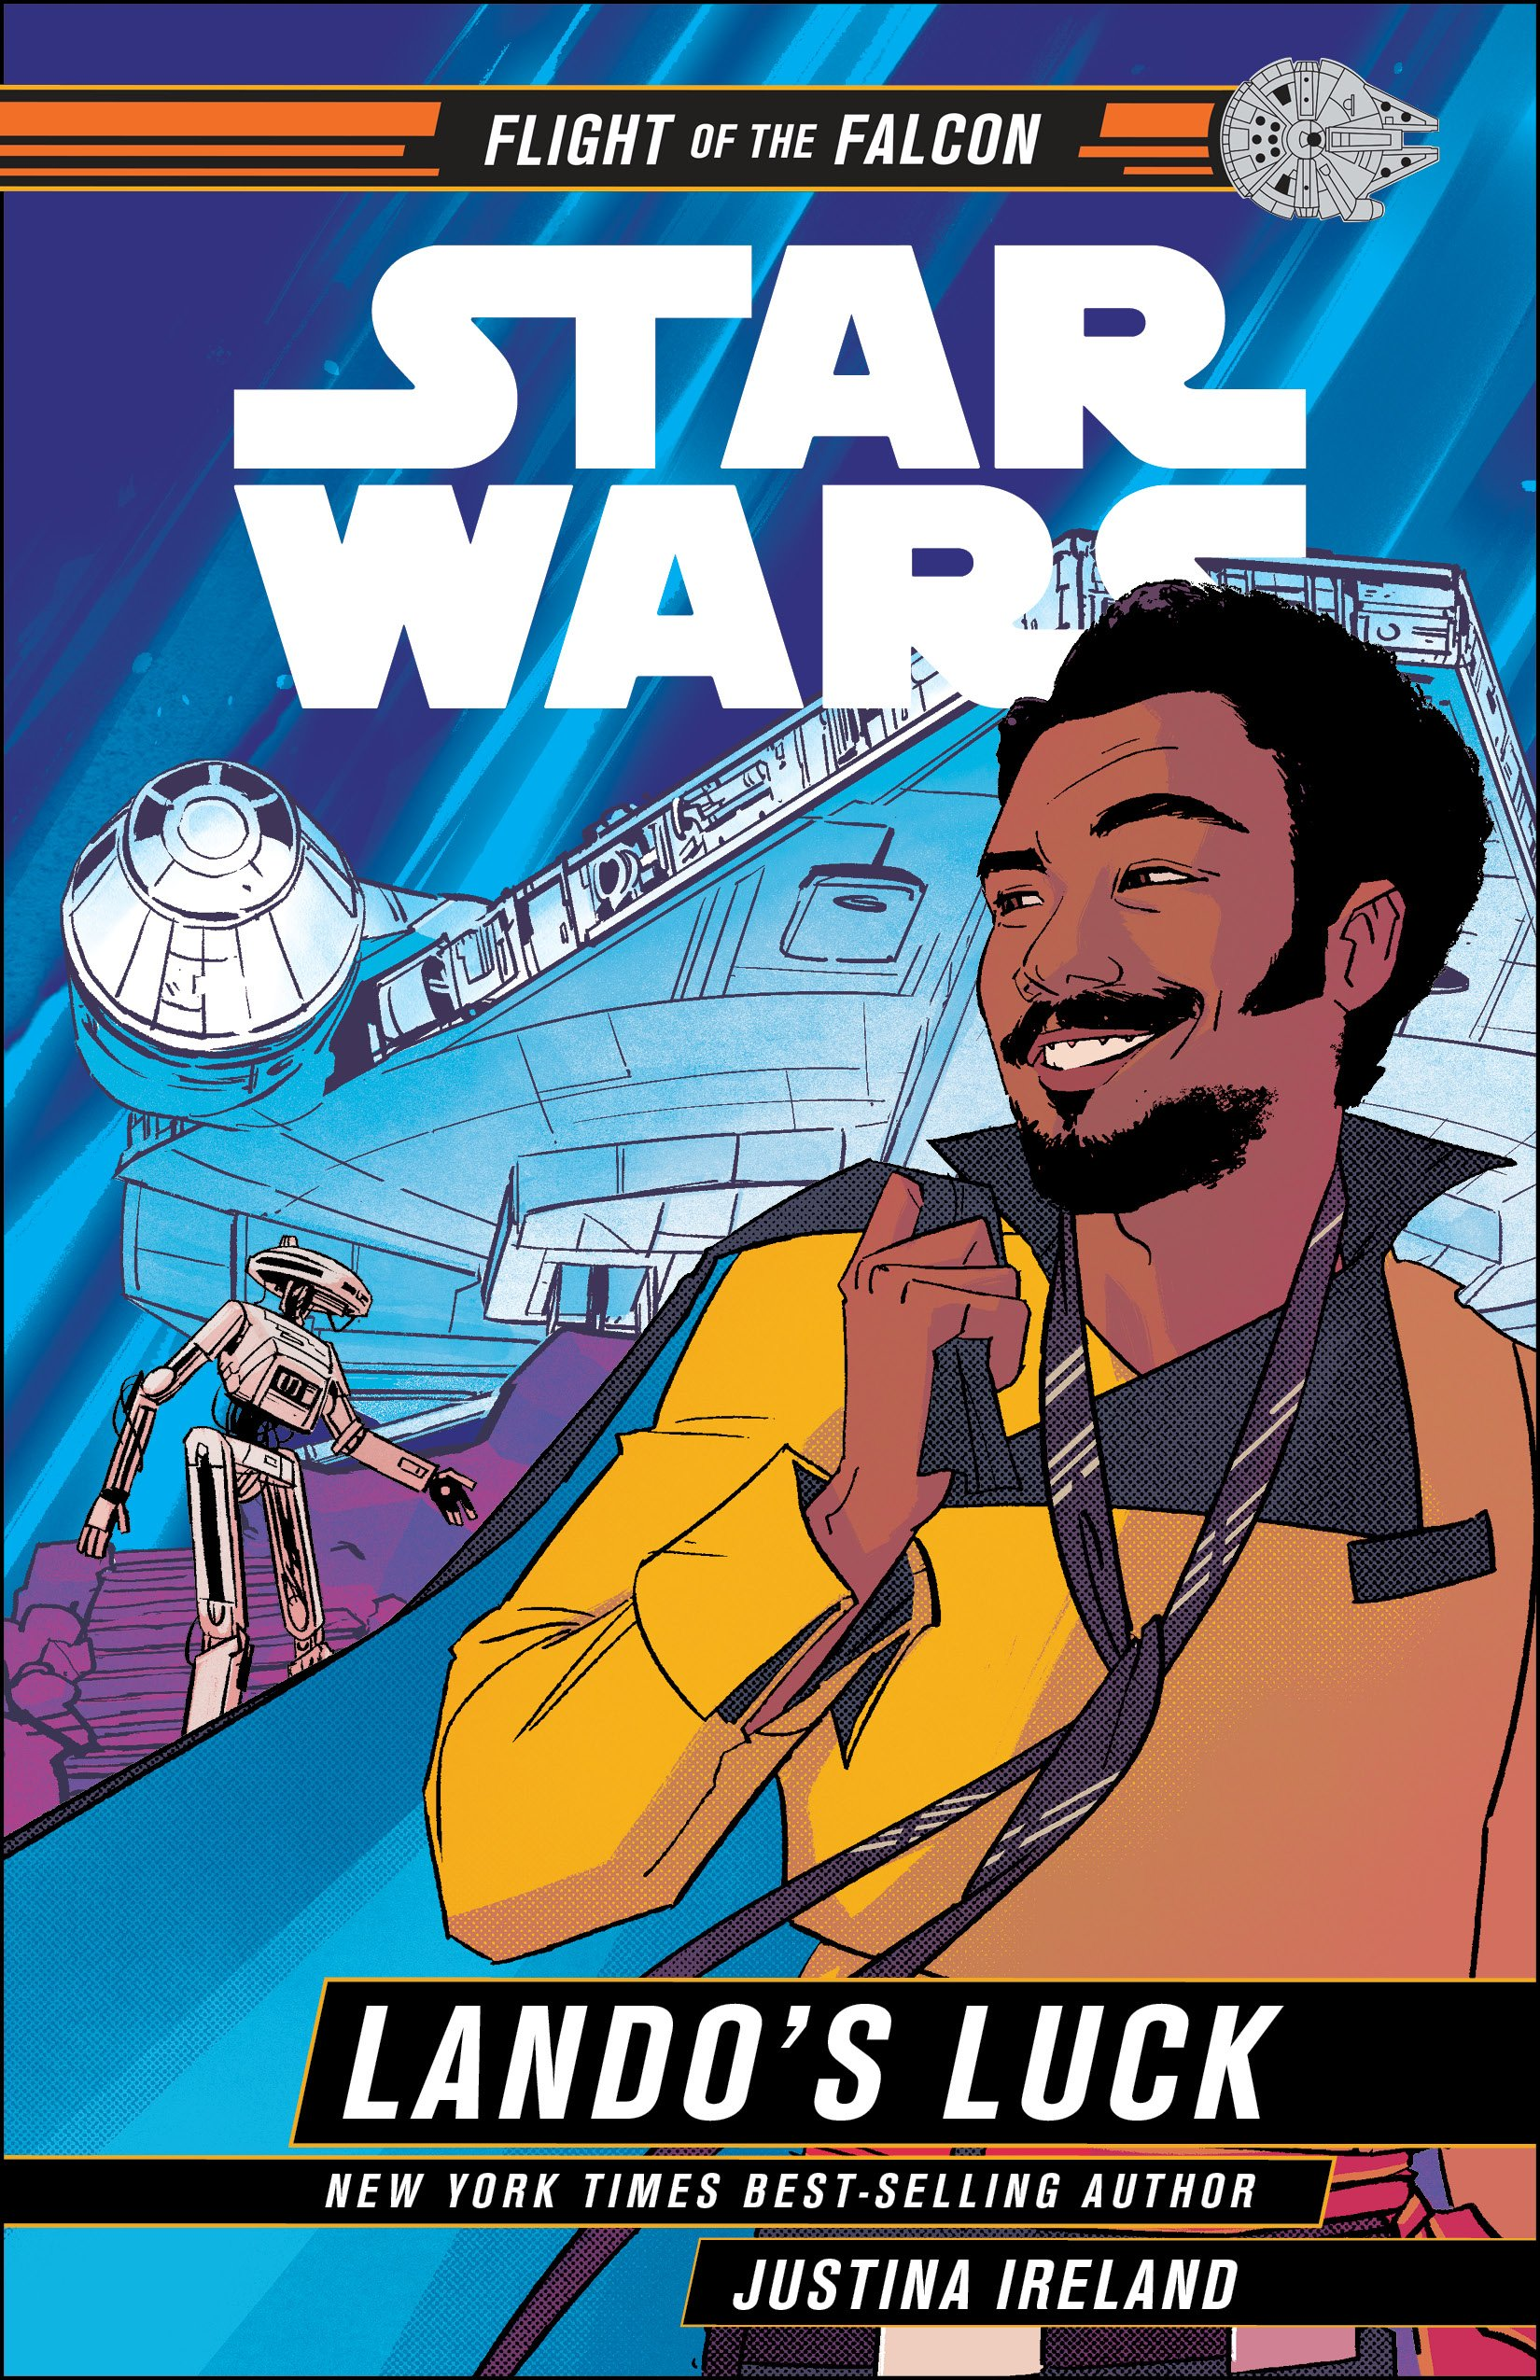 Star Wars: Lando's Luck (Star Wars: Flight of the Falcon) pdf